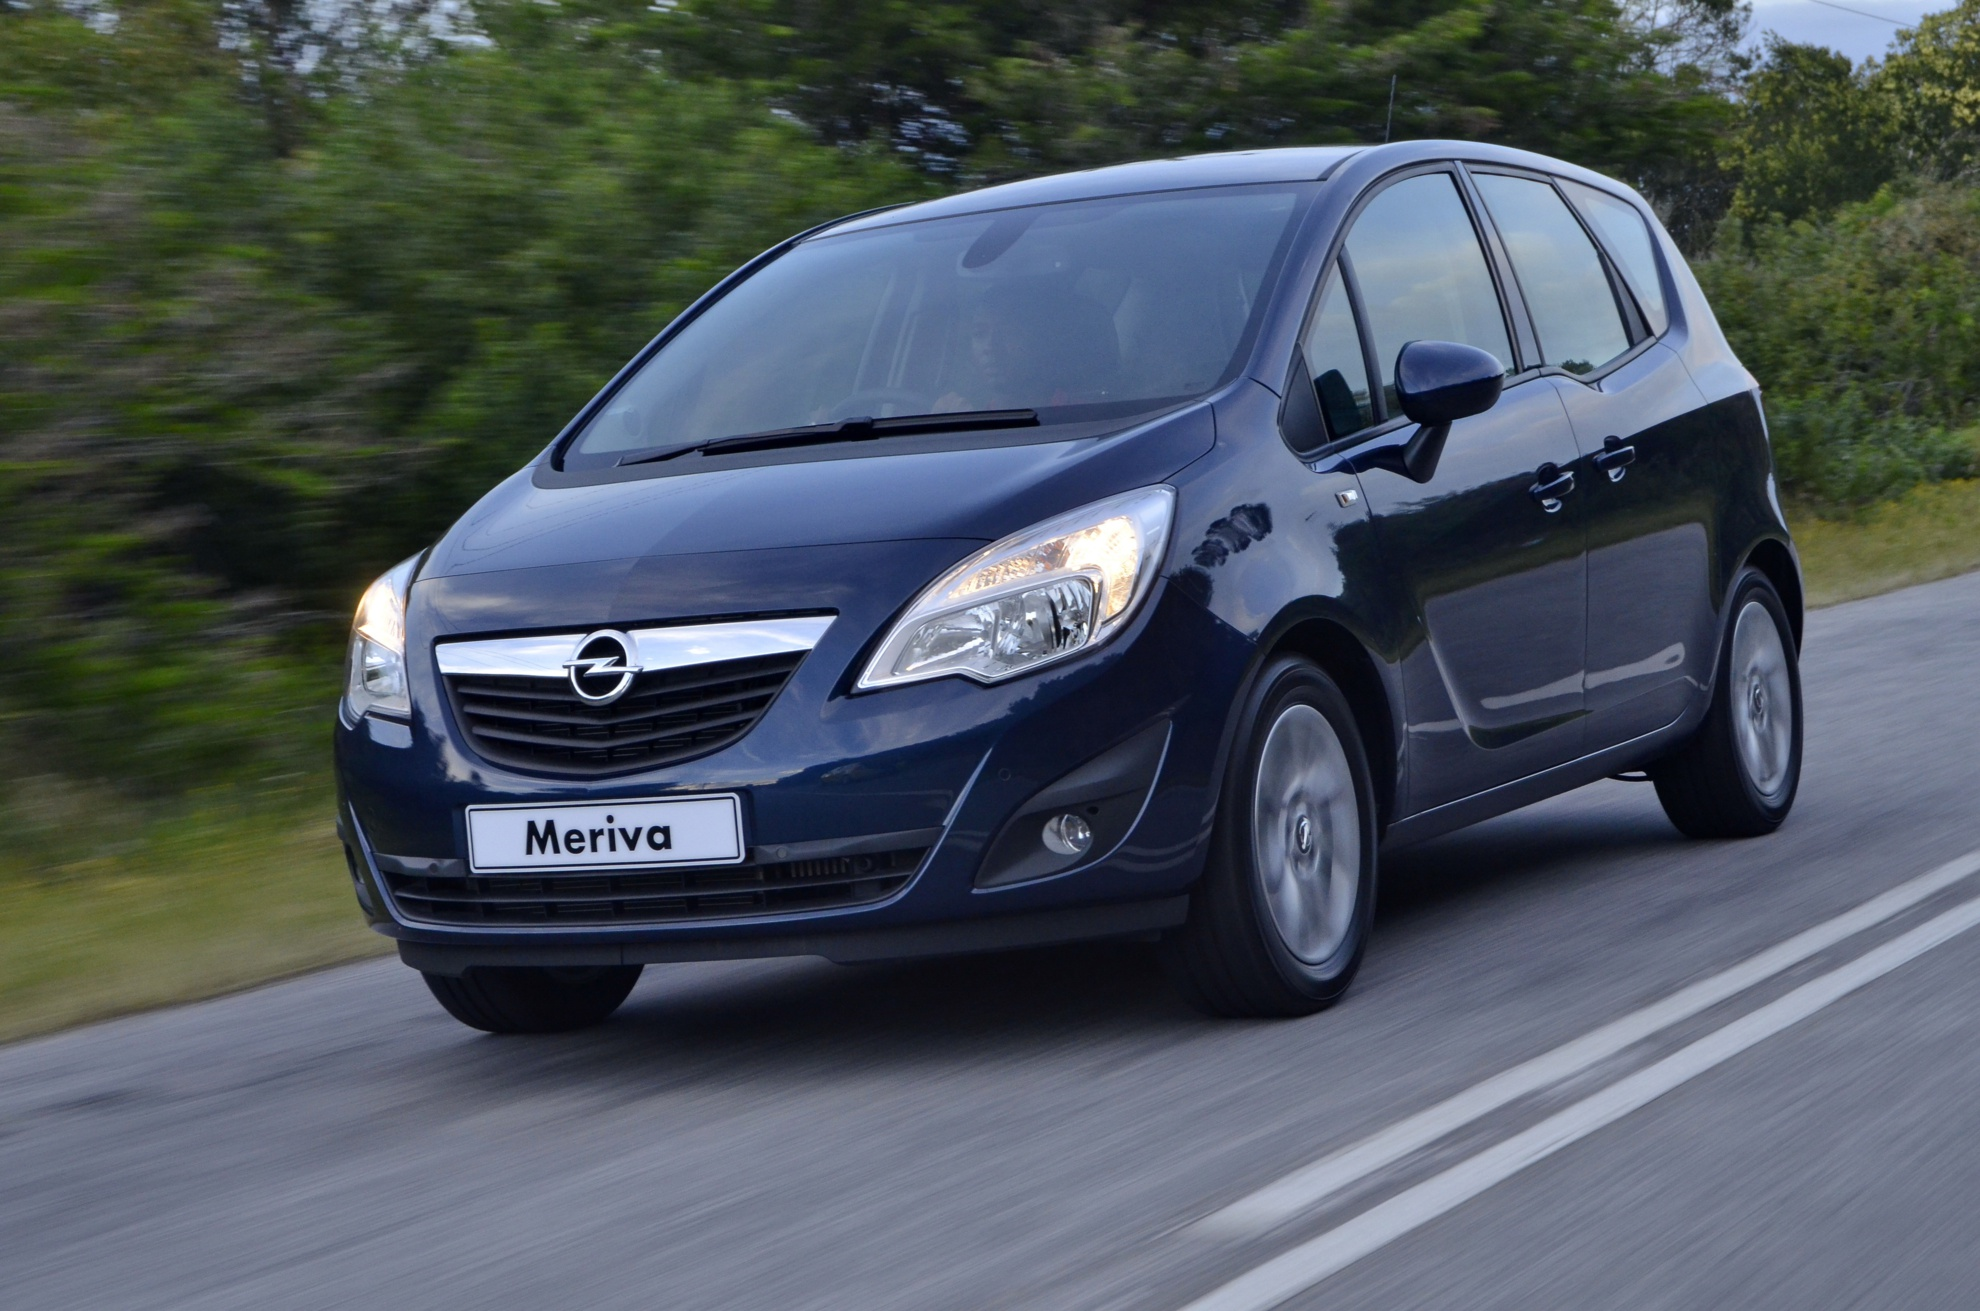 opel meriva updates south africa. Black Bedroom Furniture Sets. Home Design Ideas